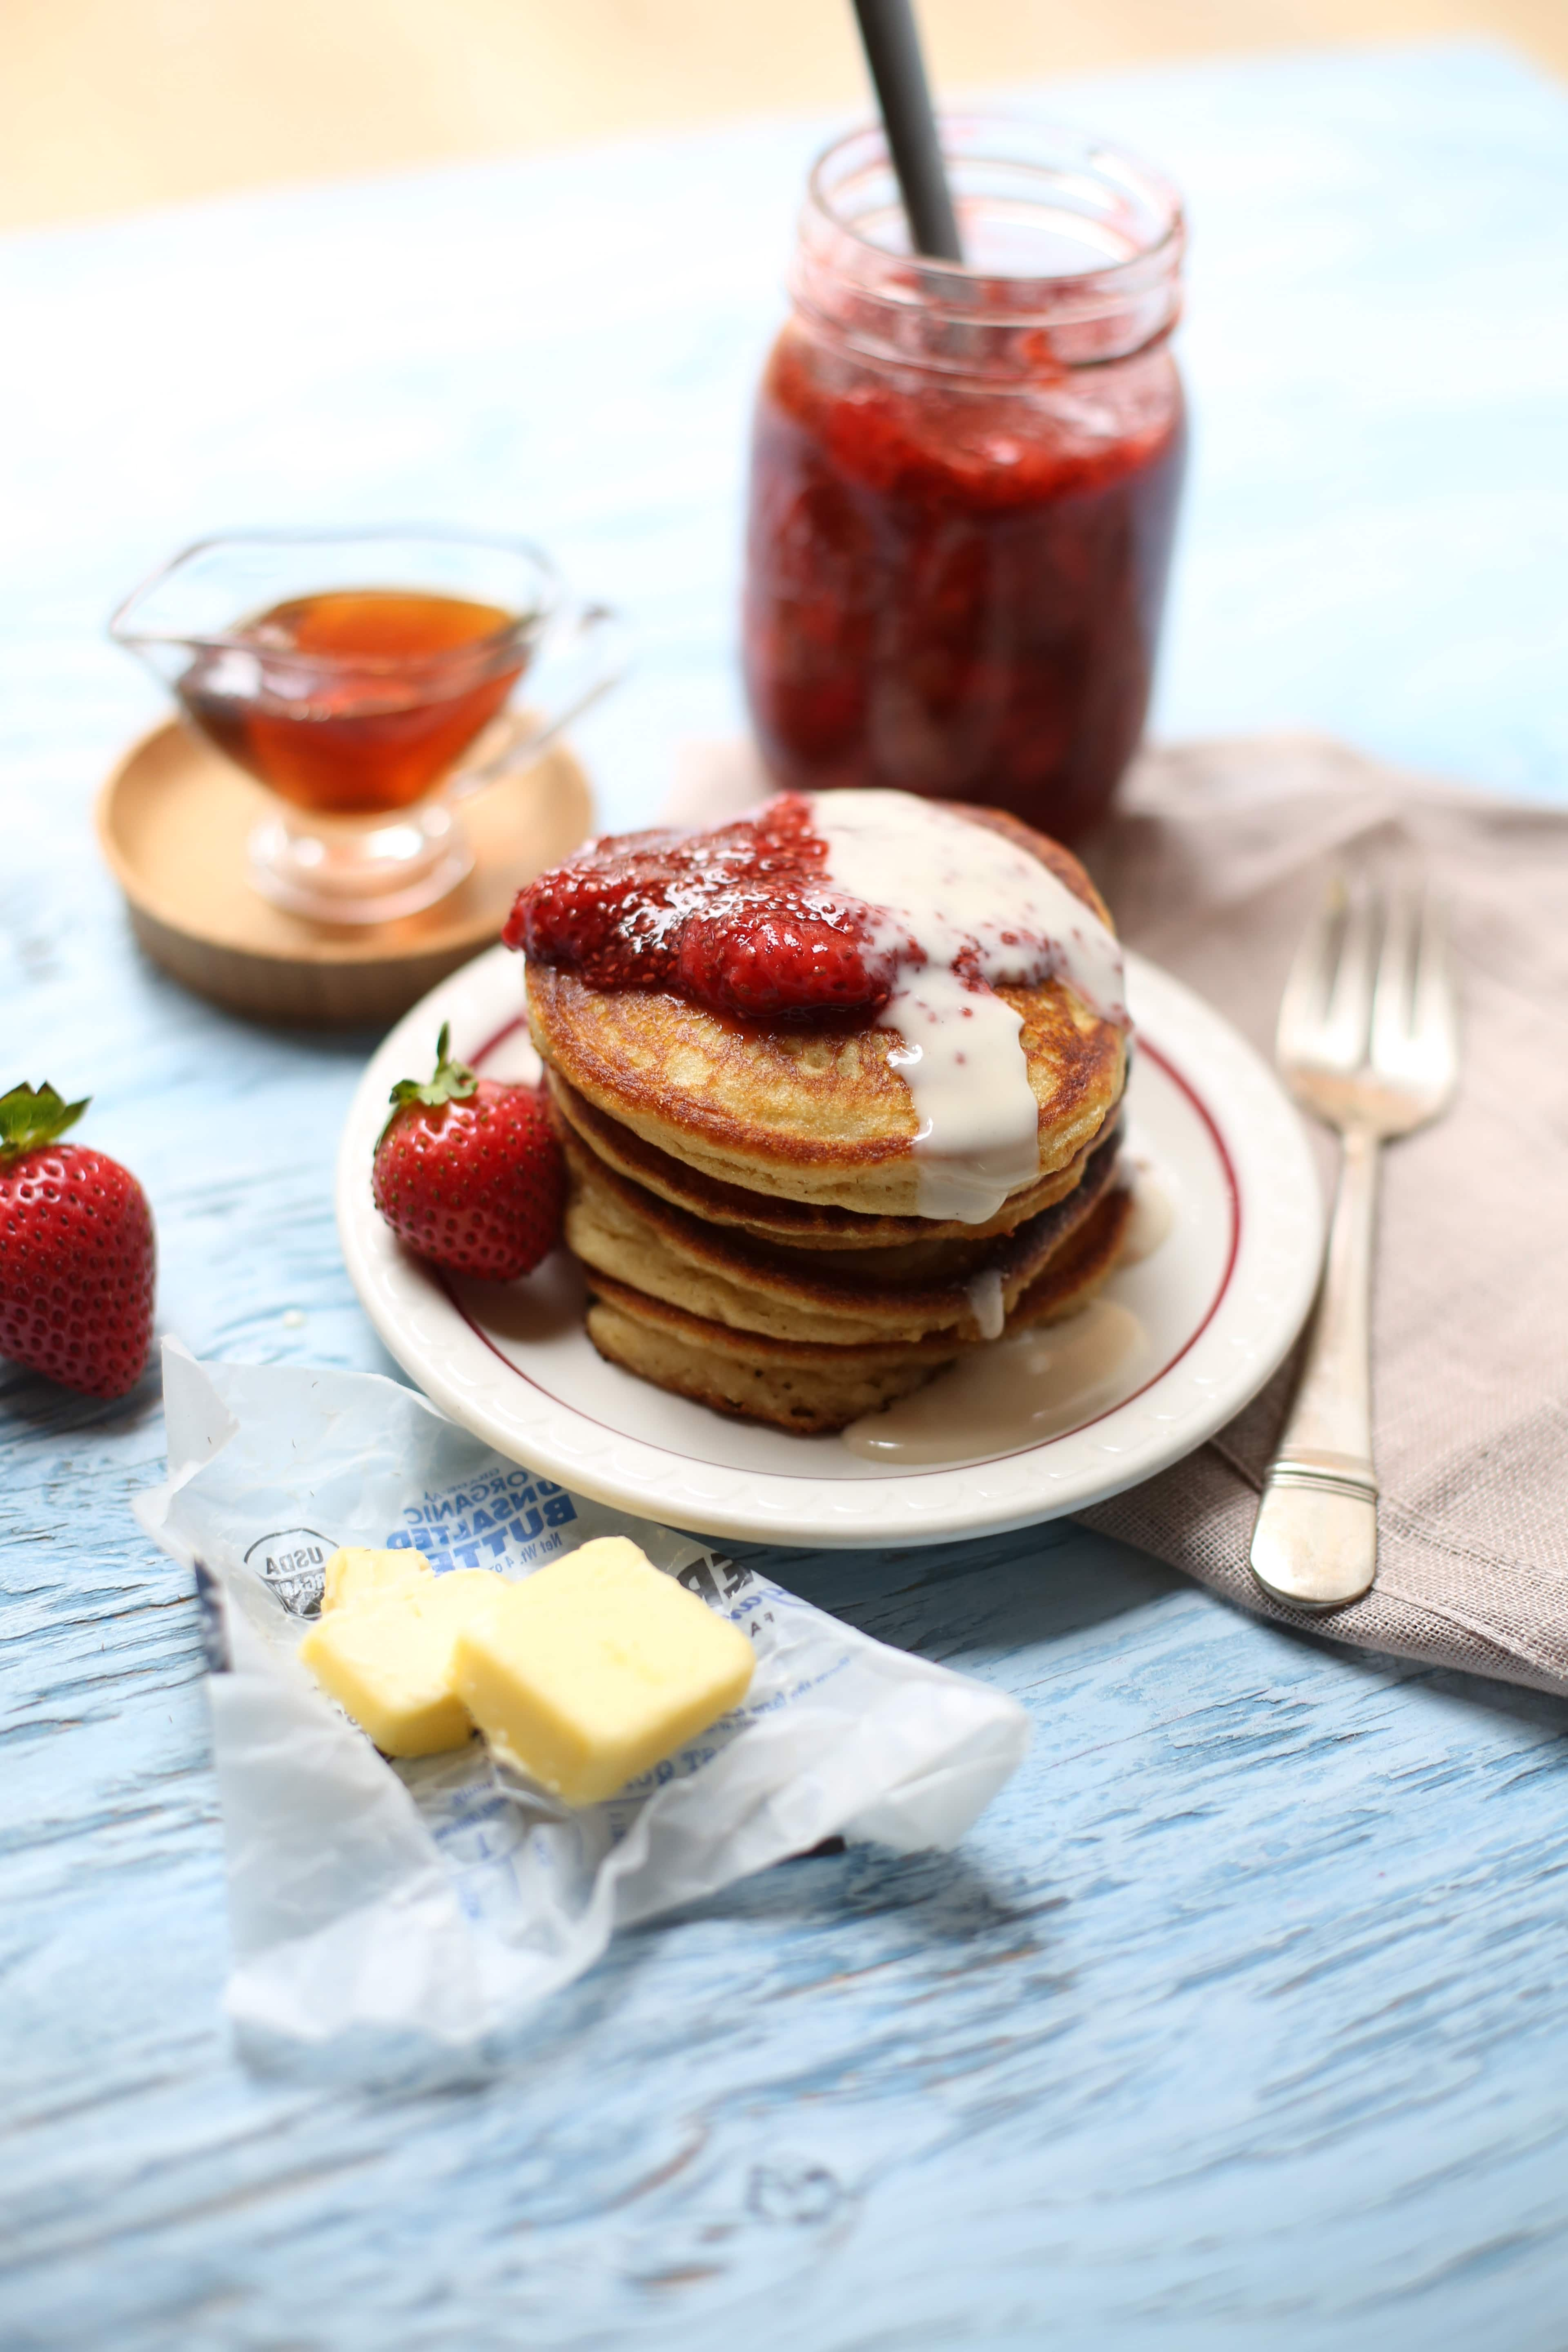 pancakes with strawberries on top and butter alongside with syrup and fork on a table.